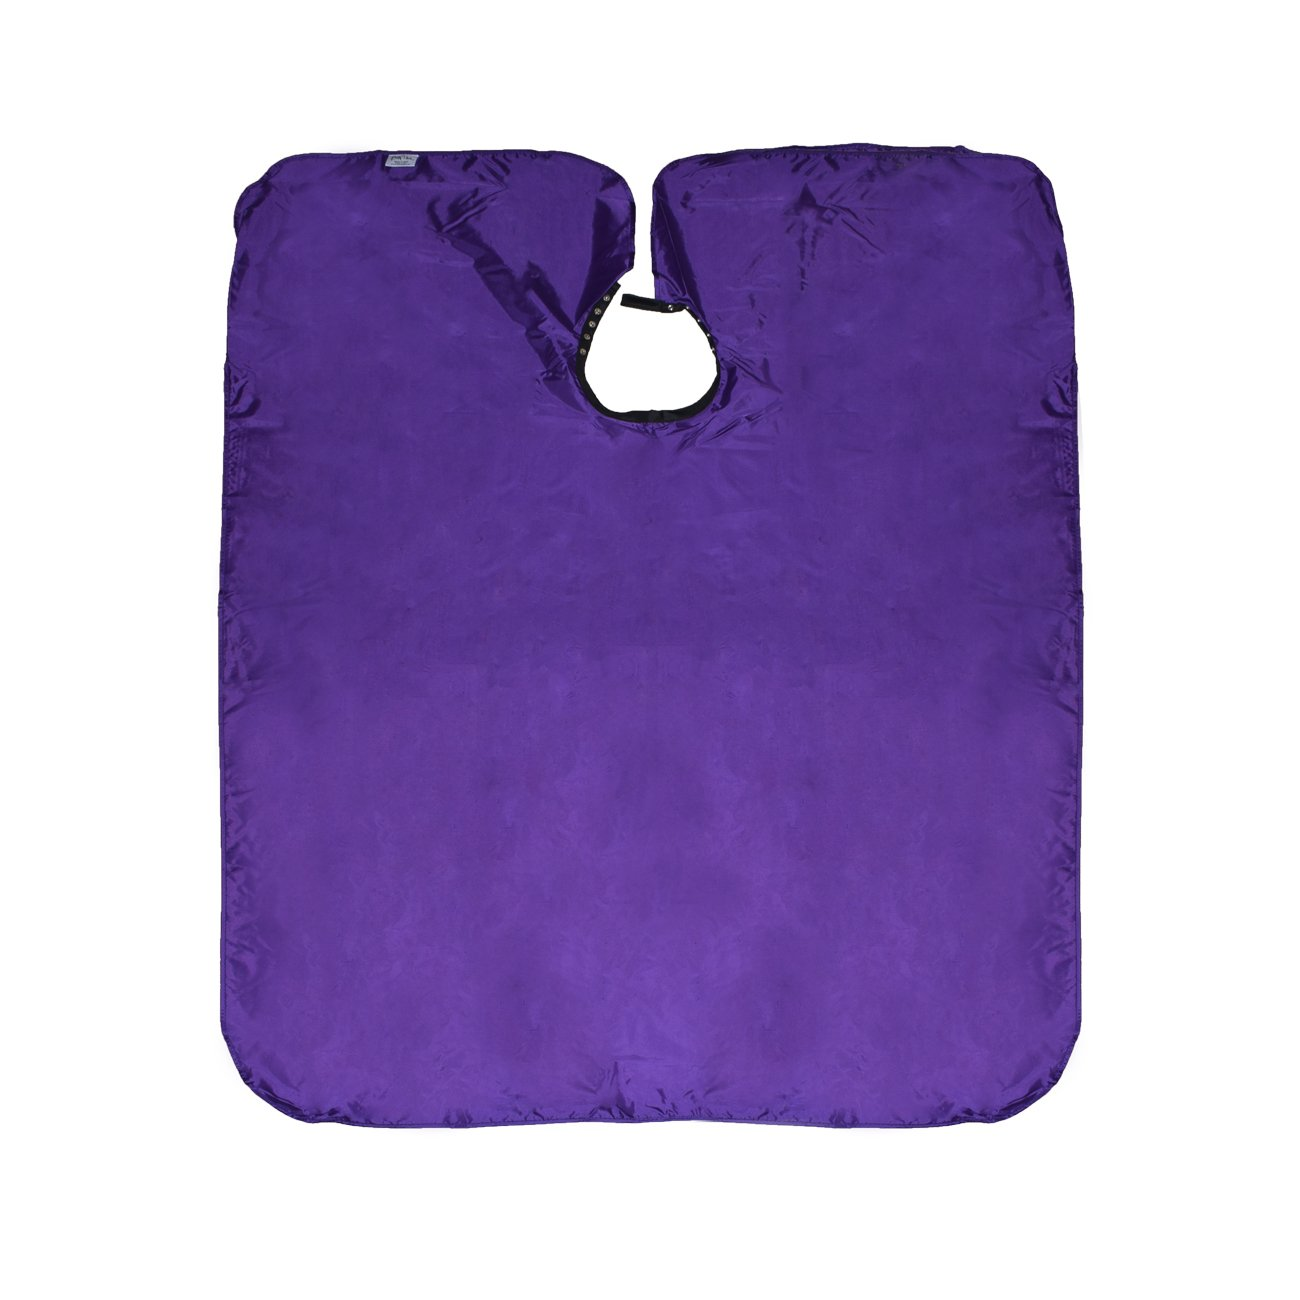 Betty Dain Nylon Chemical Proof Coloring/Styling Cape with Velcro Closure, Purple